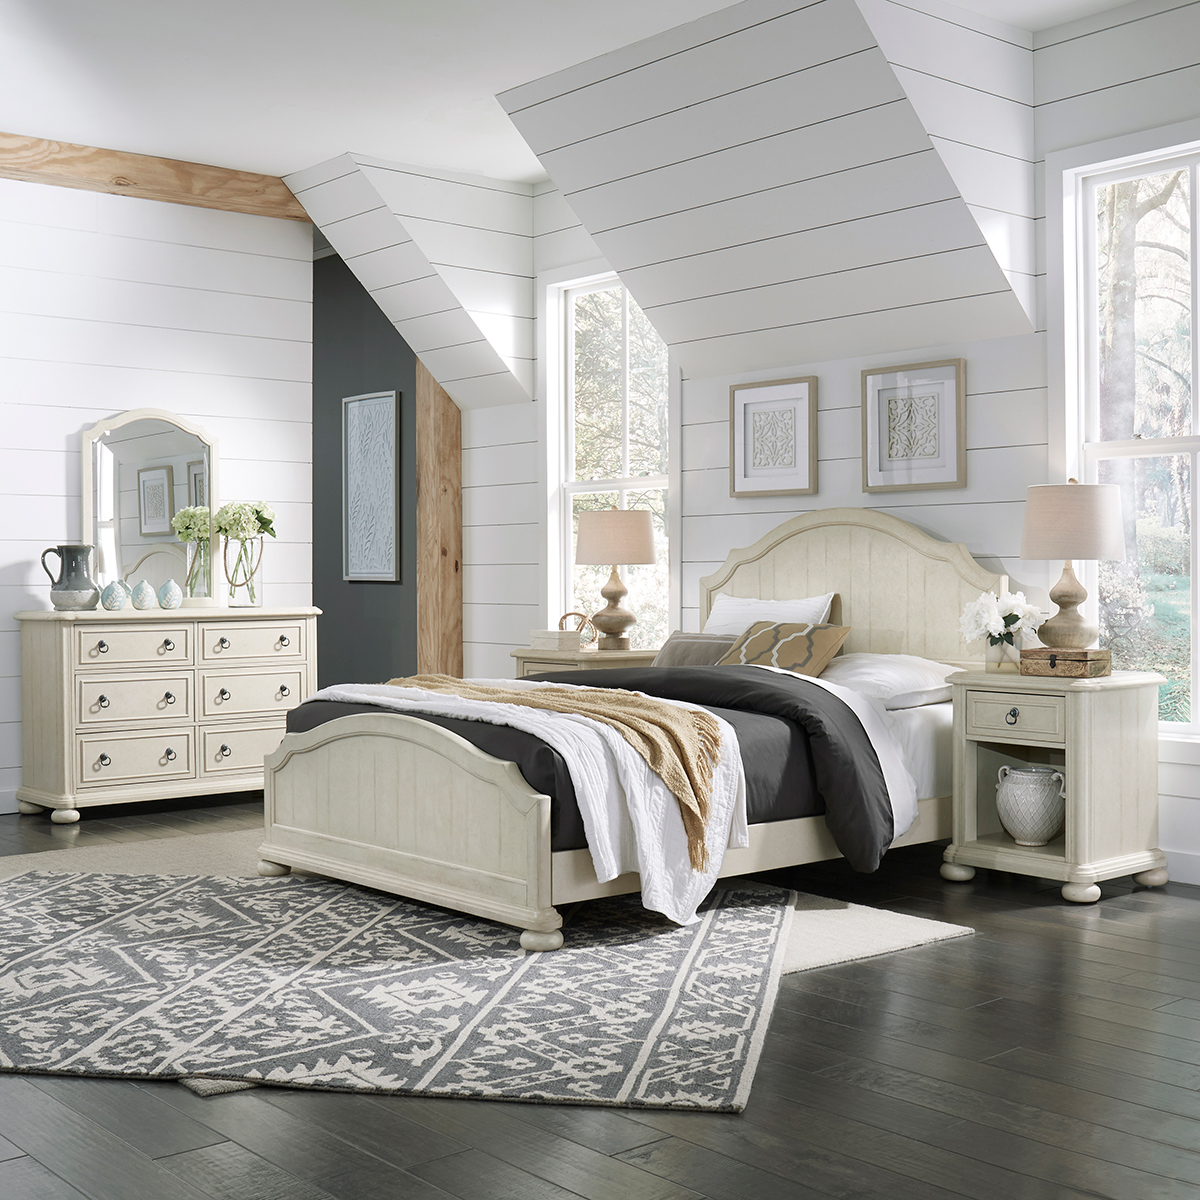 Homestyles Provence Antiqued White Queen Bed, 2 Nightstands & Dresser w/ Mirror